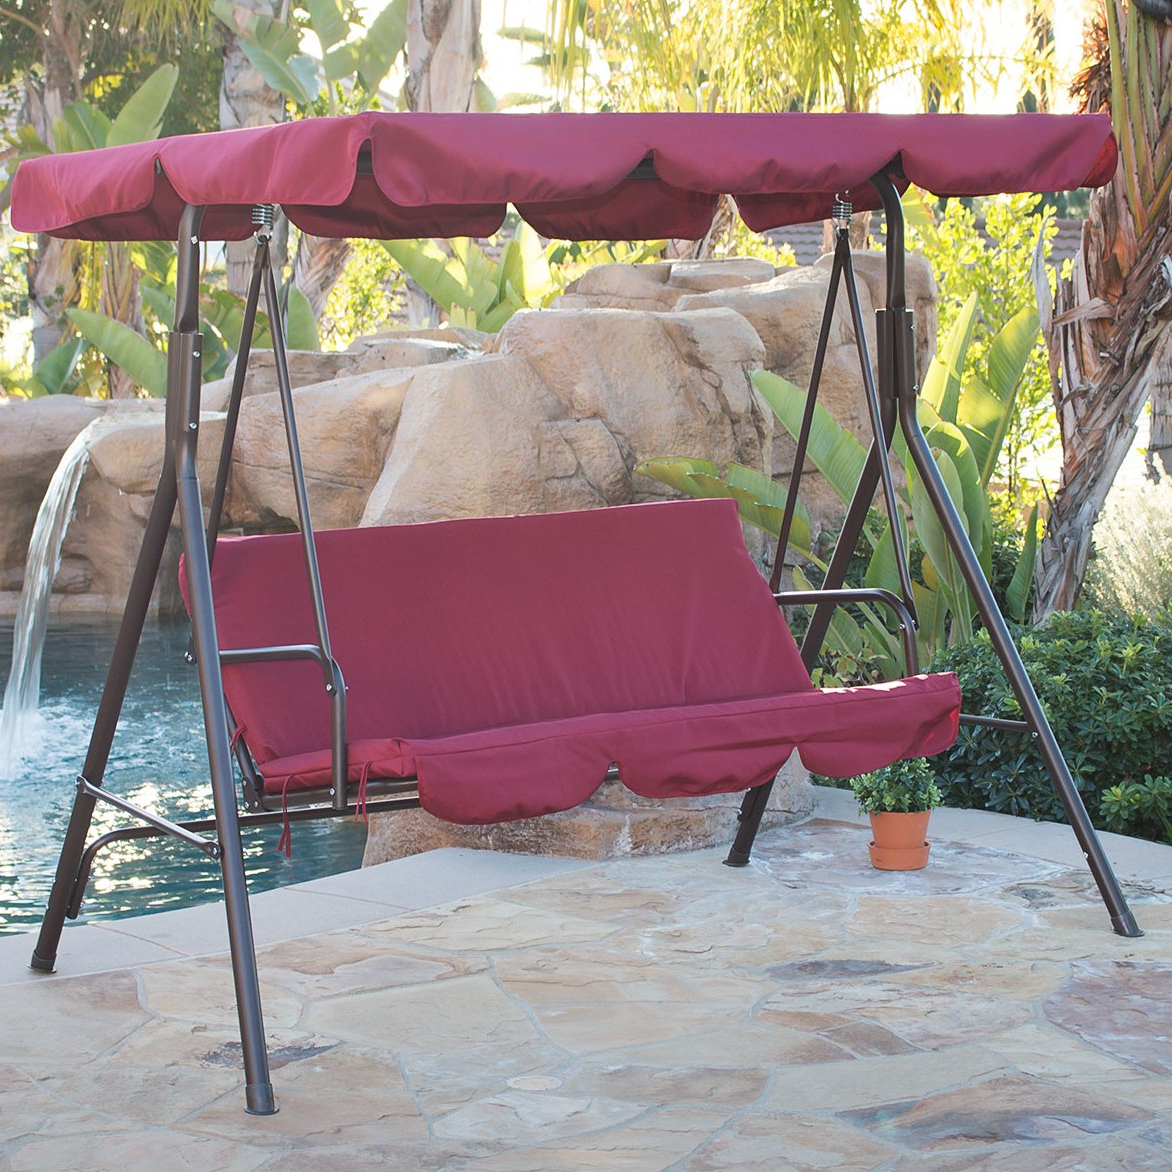 Latest Details About 3 Person Steel Outdoor Patio Porch Swing Chair With Stand And Canopy Rocker For Porch Swings With Canopy (View 6 of 30)